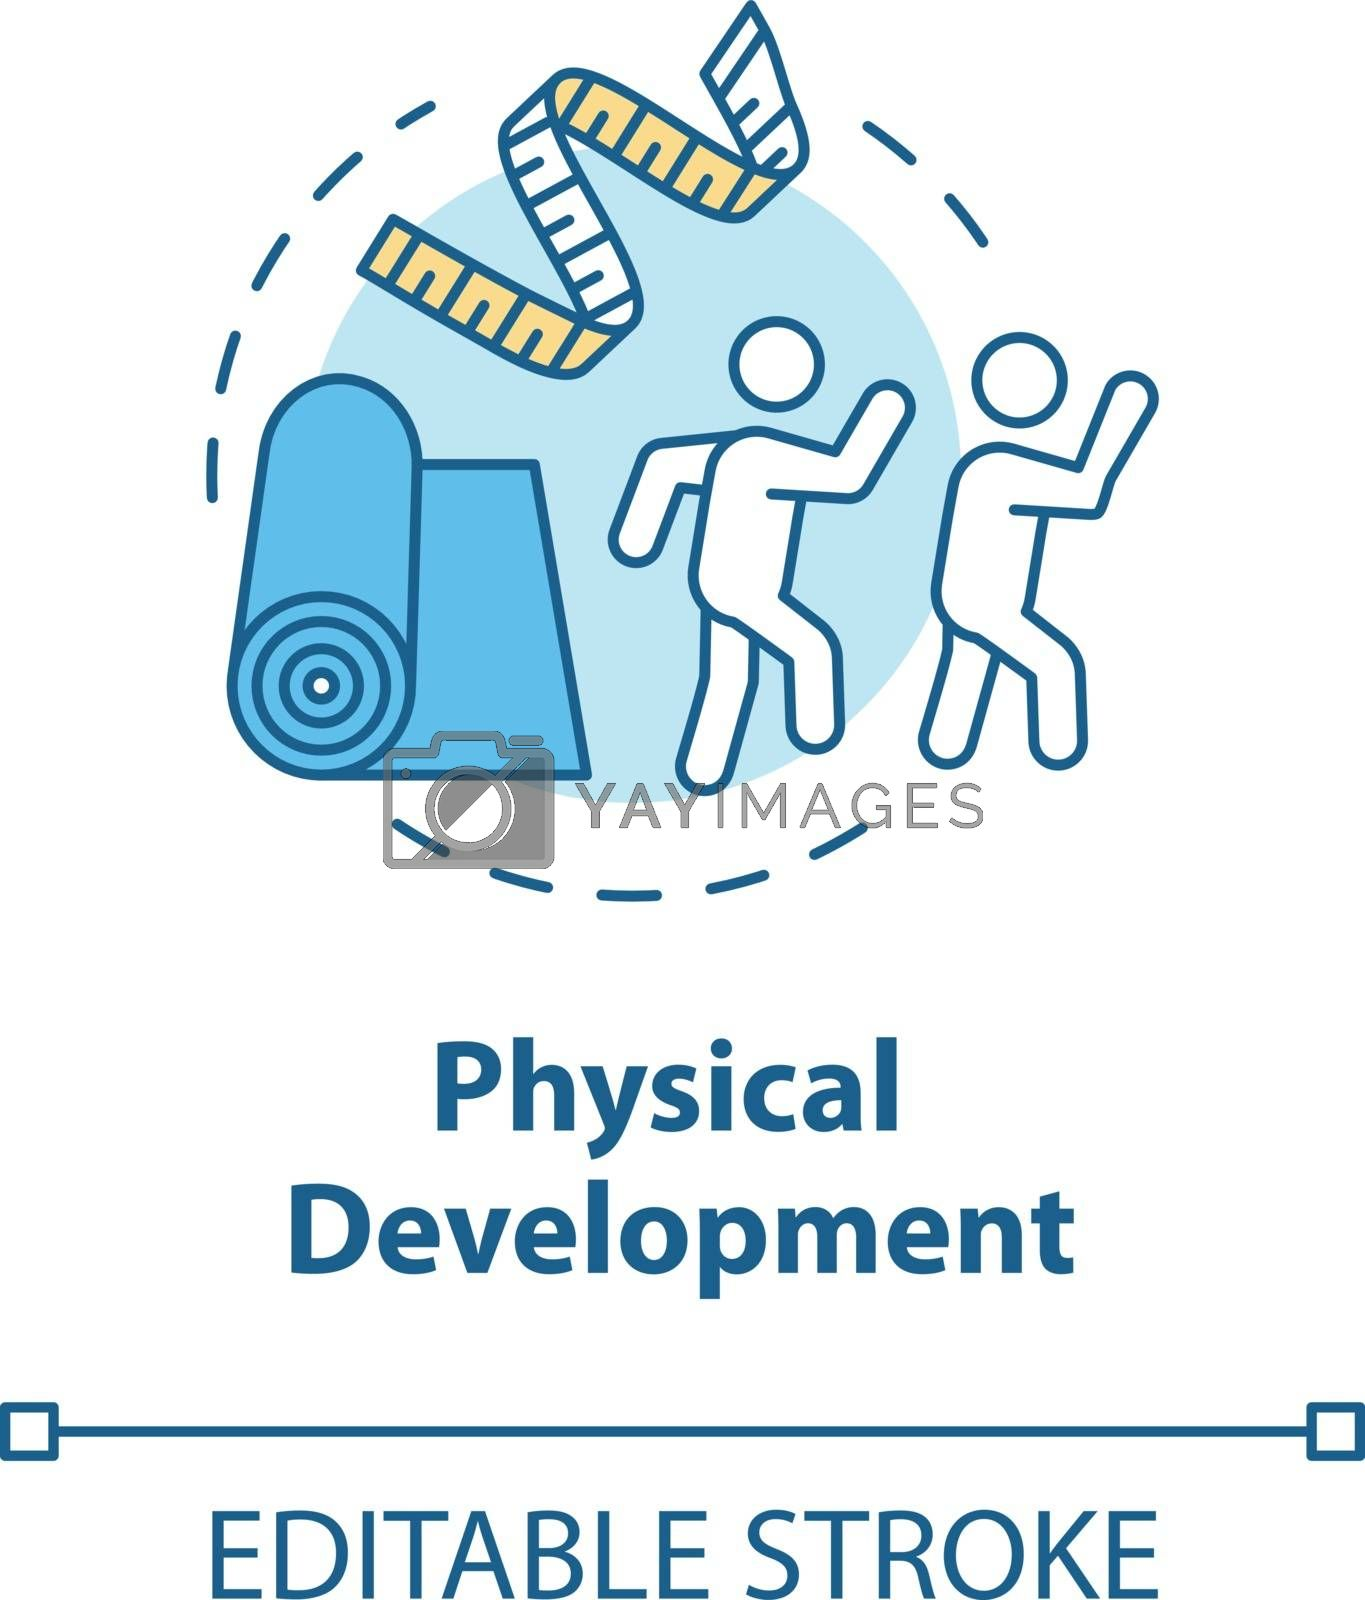 Physical development concept icon by bsd